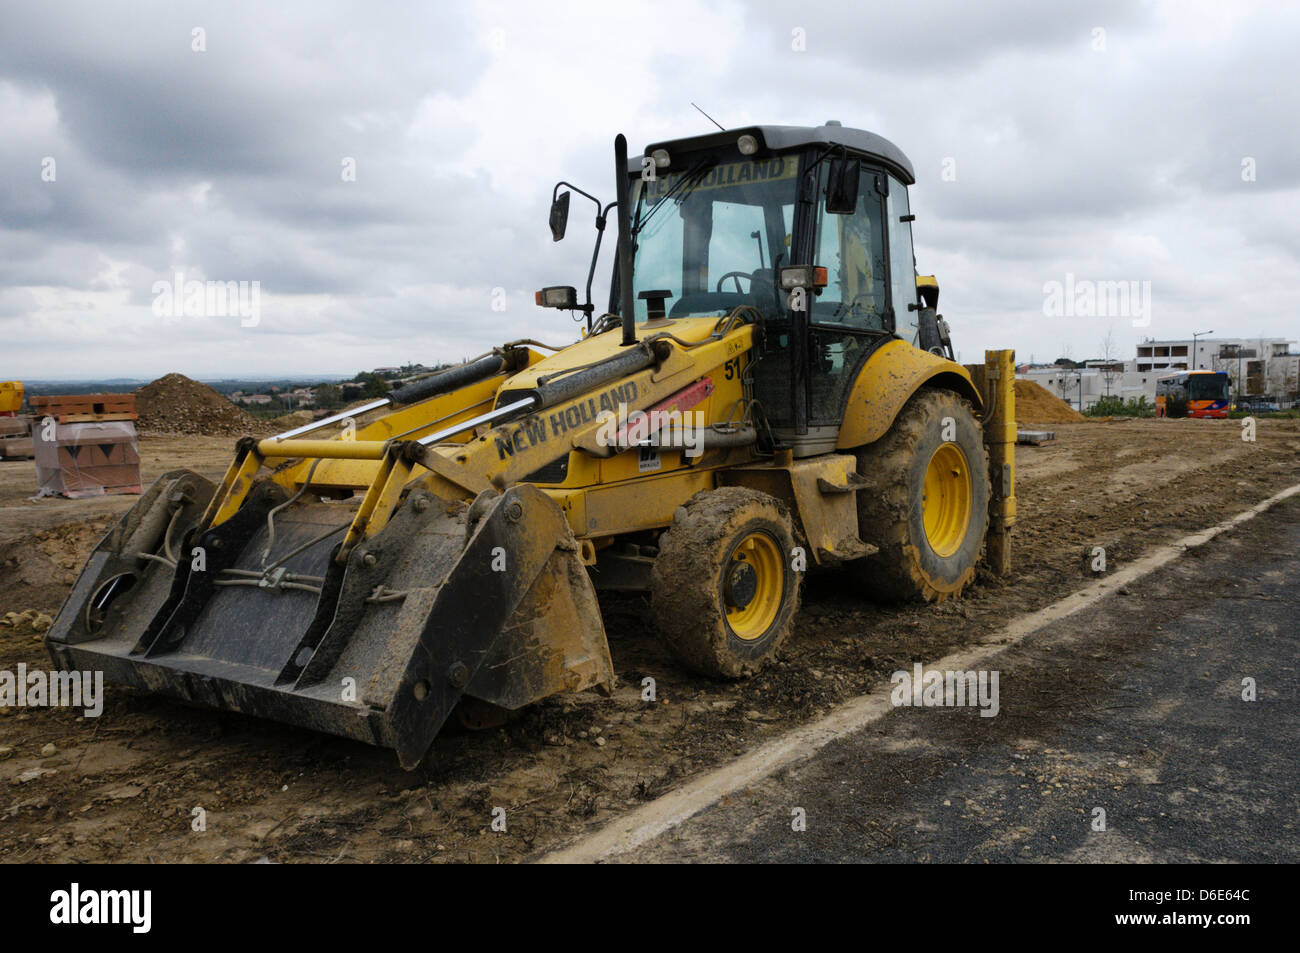 Front Loaders Stock Photos & Front Loaders Stock Images - Alamy